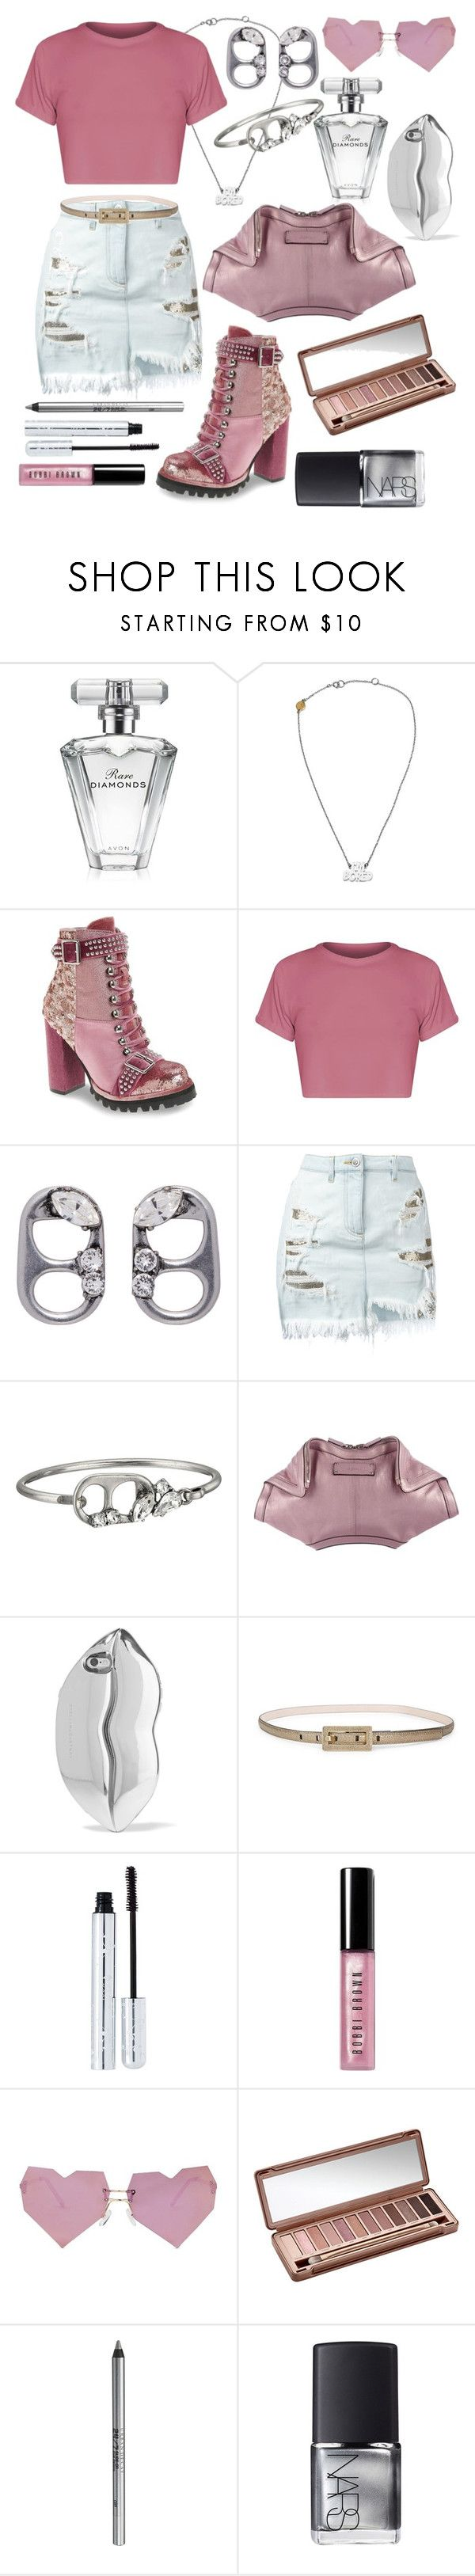 """""""Those Boots Though"""" by girlygorgeousness ❤ liked on Polyvore featuring Avon, Marc by Marc Jacobs, Jeffrey Campbell, Marc Jacobs, Versus, Alexander McQueen, STELLA McCARTNEY, Calvin Klein, 100% Pure and Bobbi Brown Cosmetics"""